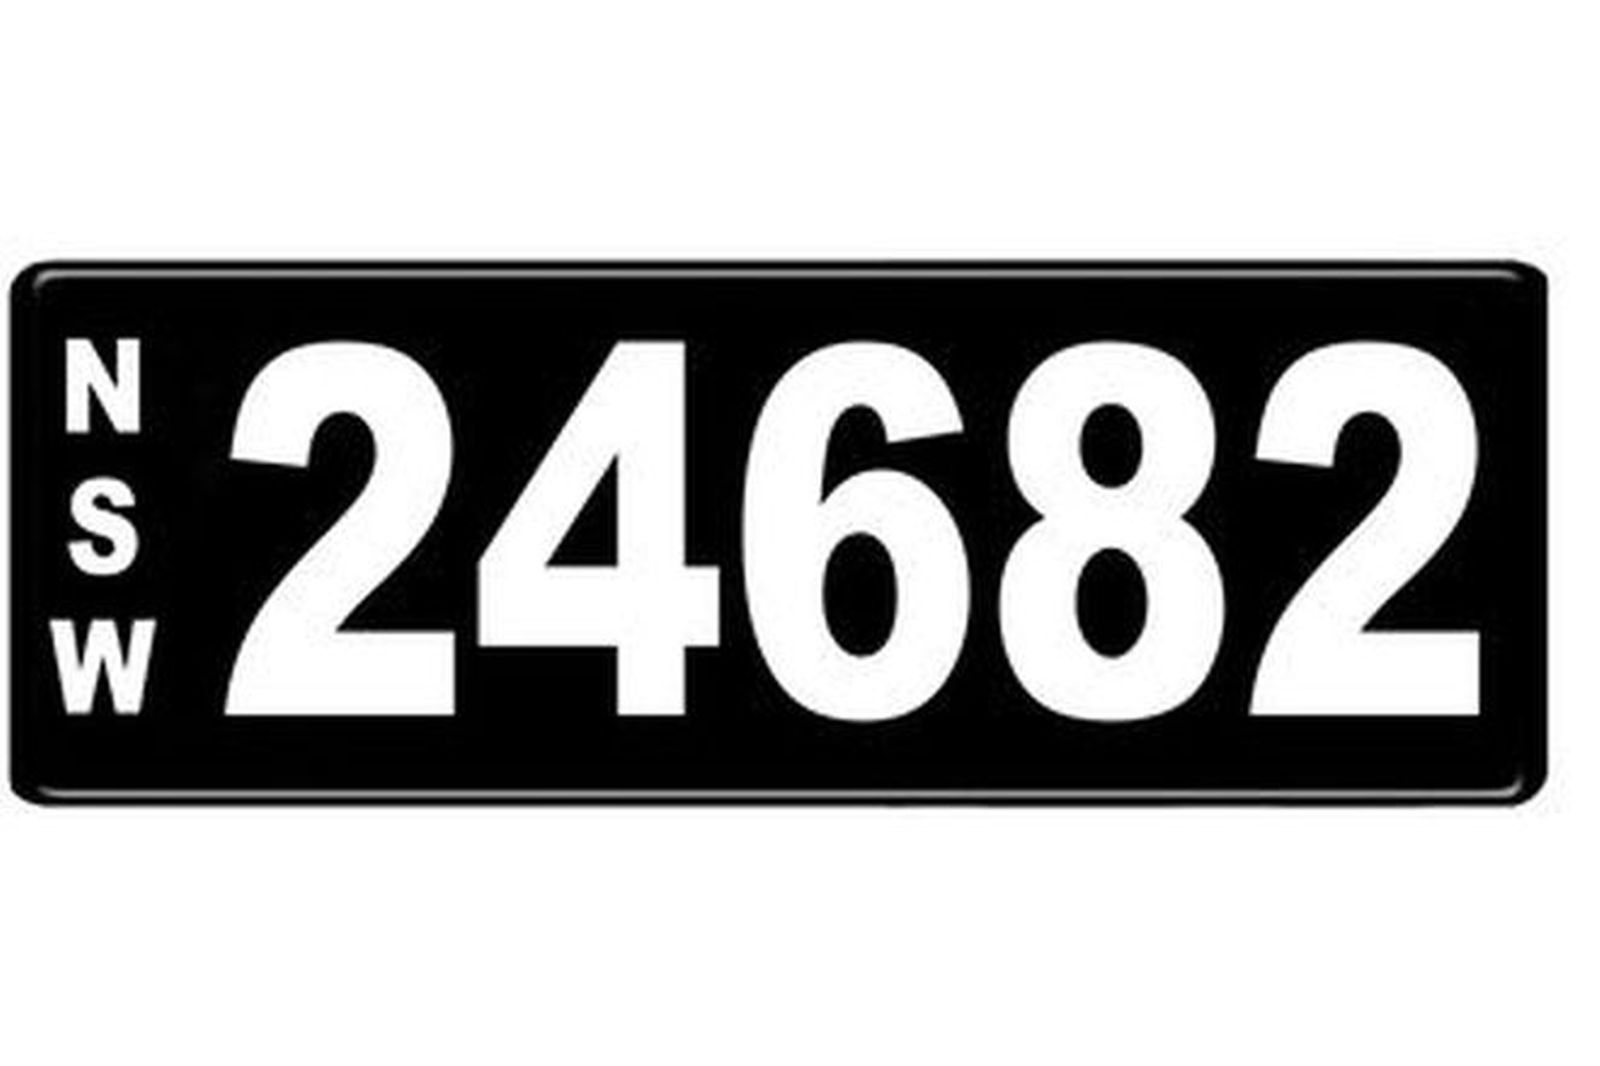 Number Plates - NSW Numerical Number Plates '24682'